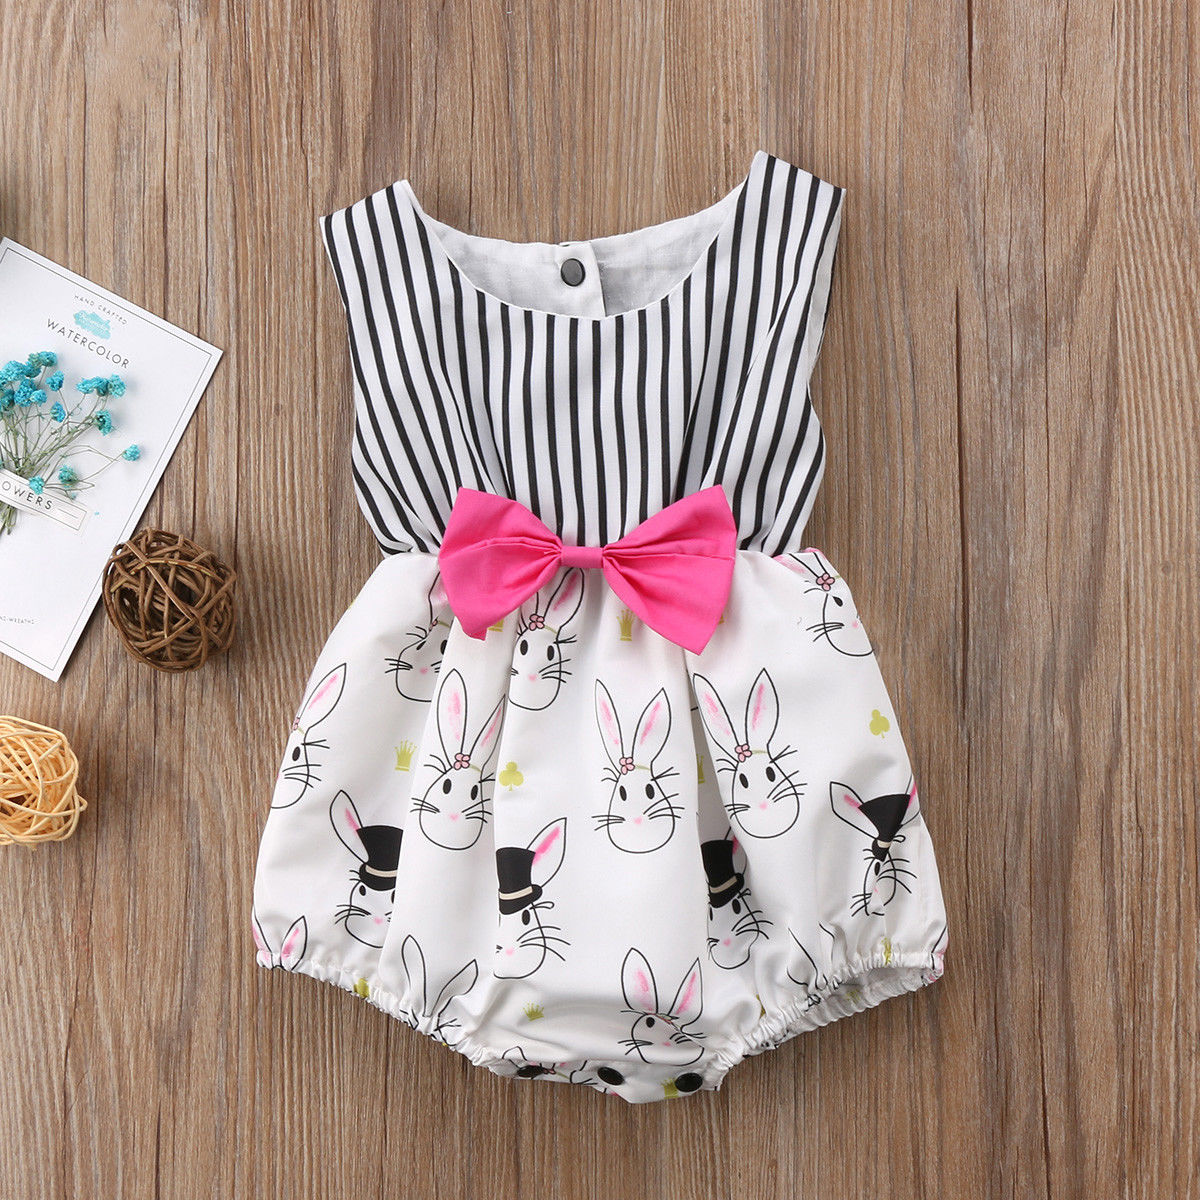 Responsible Baby Girls Handmade Playsuit Easter One-pieces Girls' Clothing (newborn-5t)